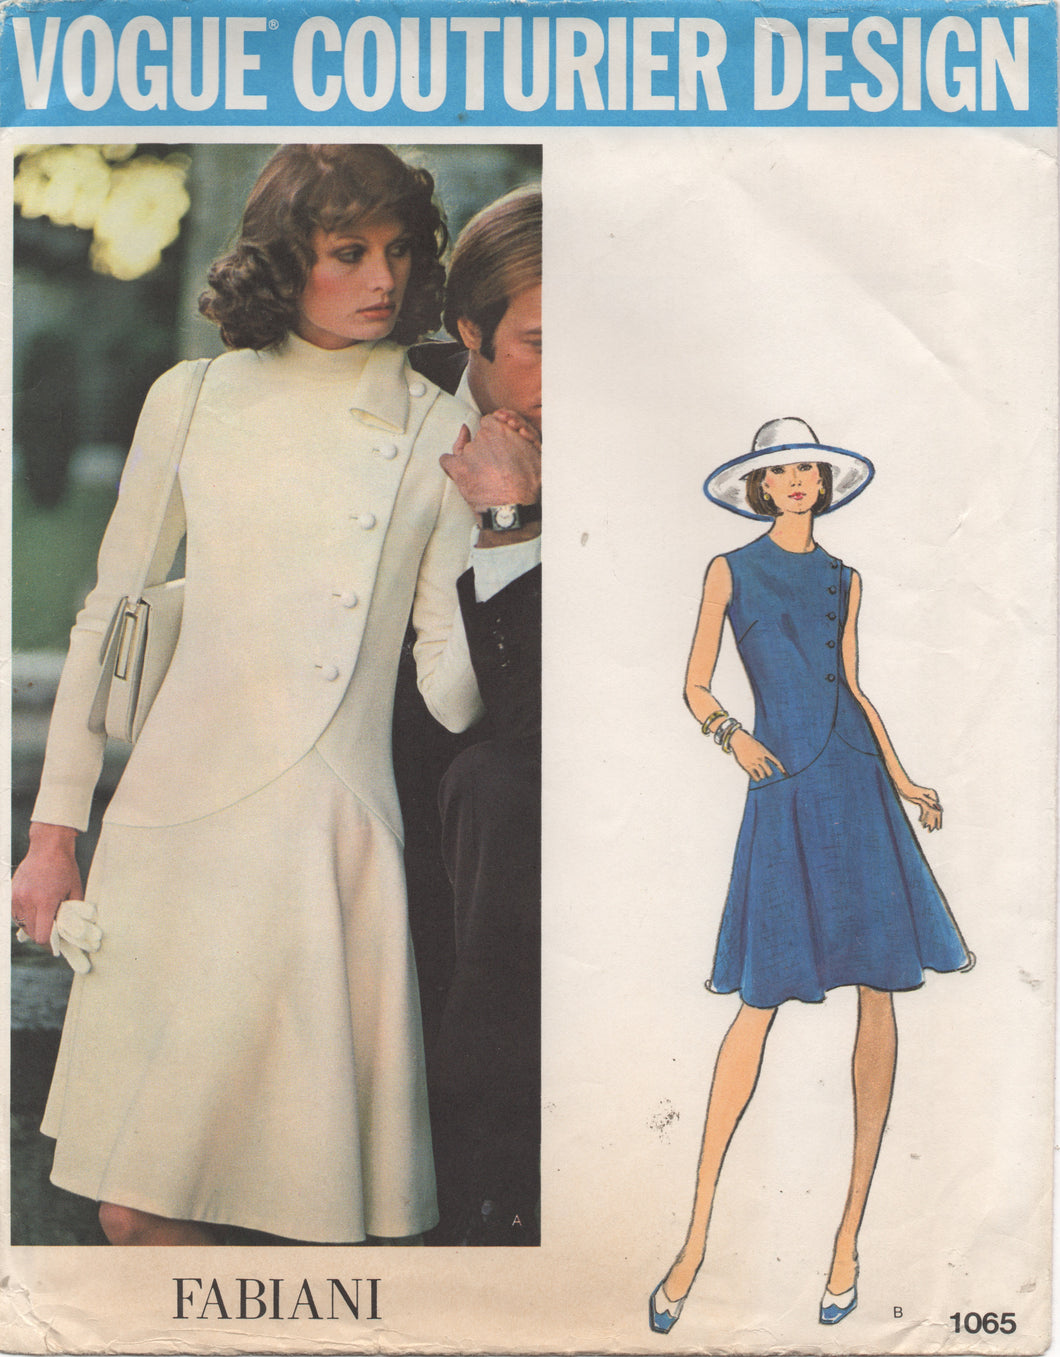 1970's Vogue Couturier Design - One Piece Dress with Cross over front and Button detail with Belt - Bust 32.5